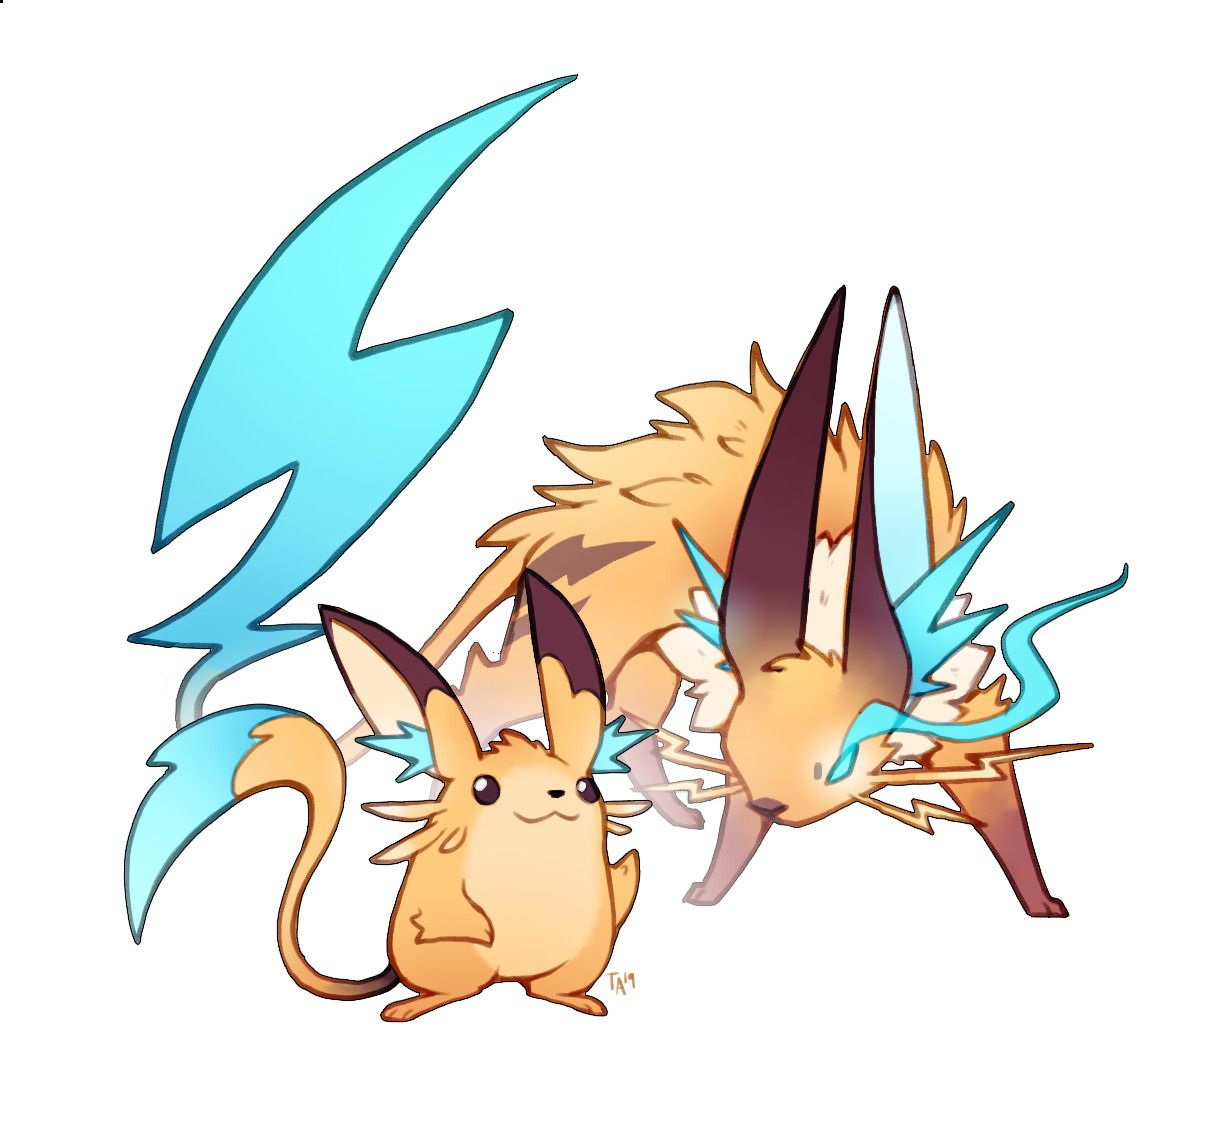 Zestydoesthings Thank You For So Much Love On The Gen1 Starter Pokemon Starters Pikachu Pokemon Rpg Raiju the thunder beast from the story japan's folklore stories by did you know that in pokémon, raichu is based on a legendary creature in japanese folklore called raijū. pinterest